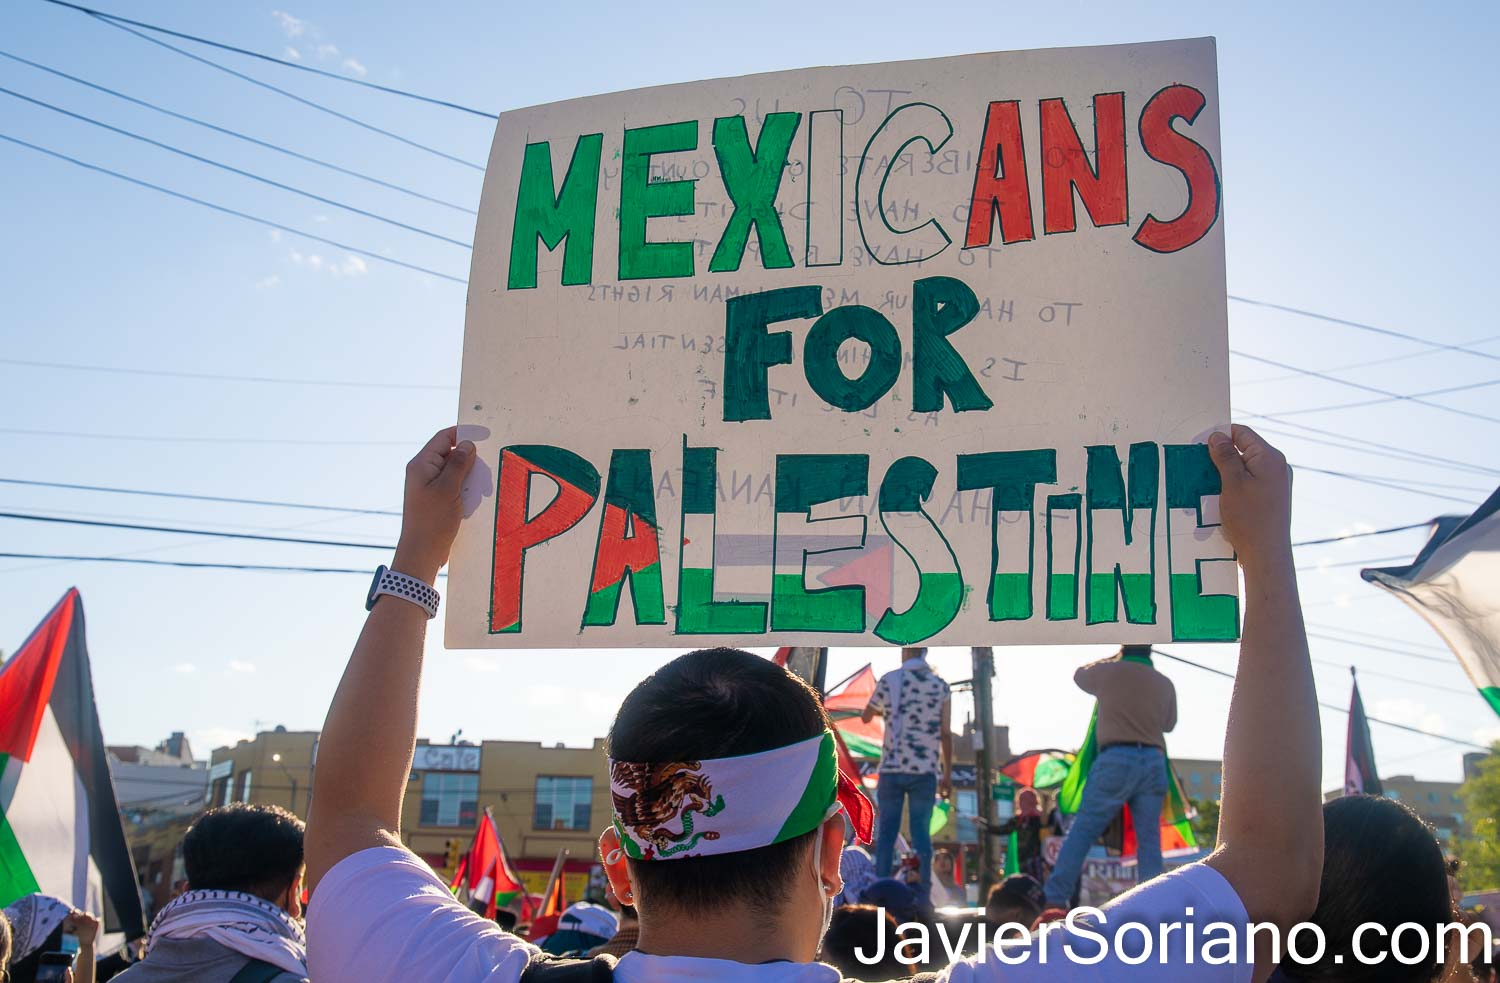 """Monday, May 31, 2021. Bronx, New York City - Rally and march for Palestine.   THIS PHOTO: A Mexican man with a sign that reads: """"Mexicans for Palestine"""".  Photo by Javier Soriano/www.JavierSoriano.com"""